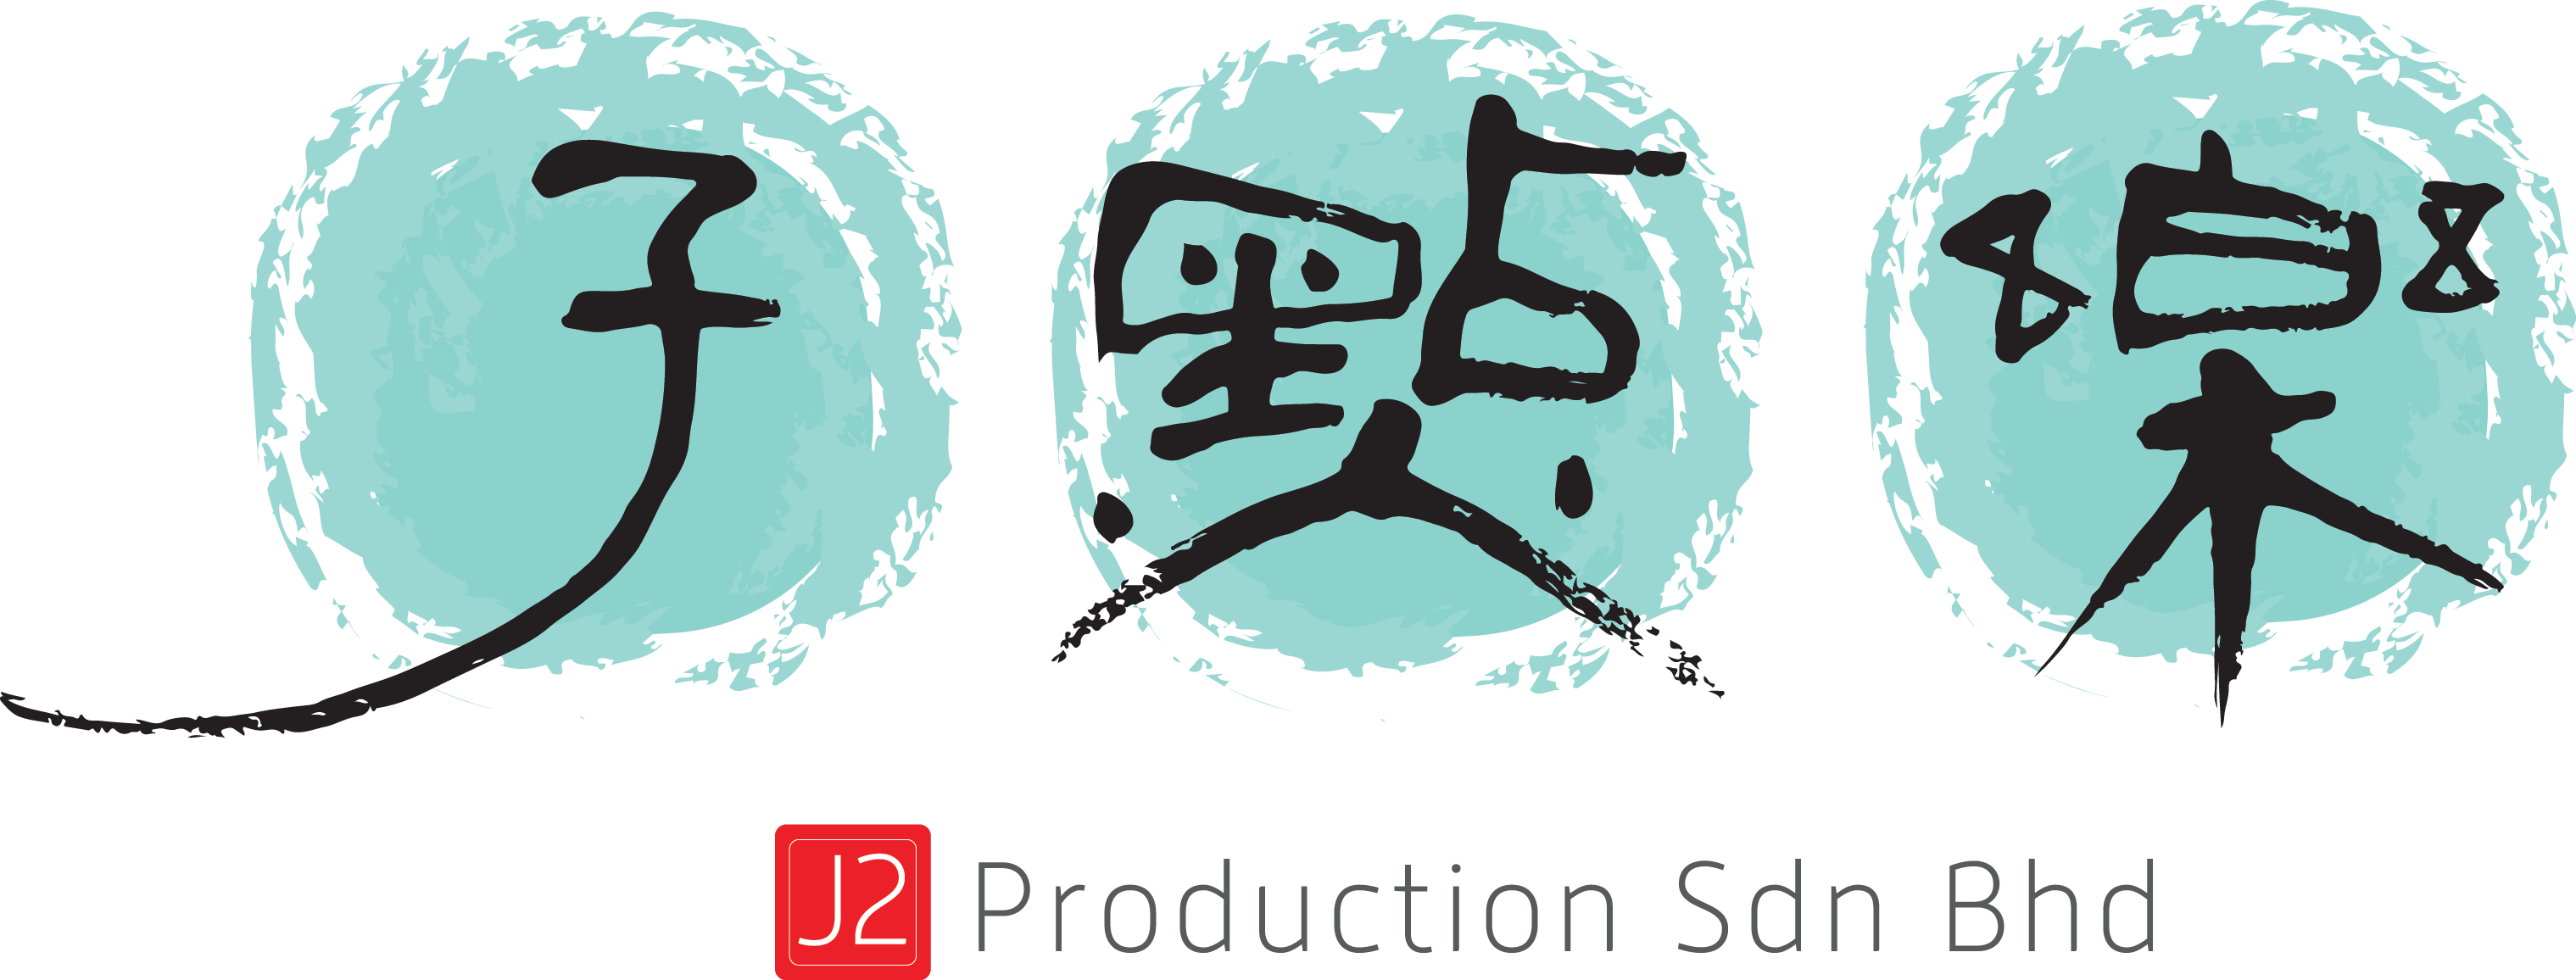 J2Production